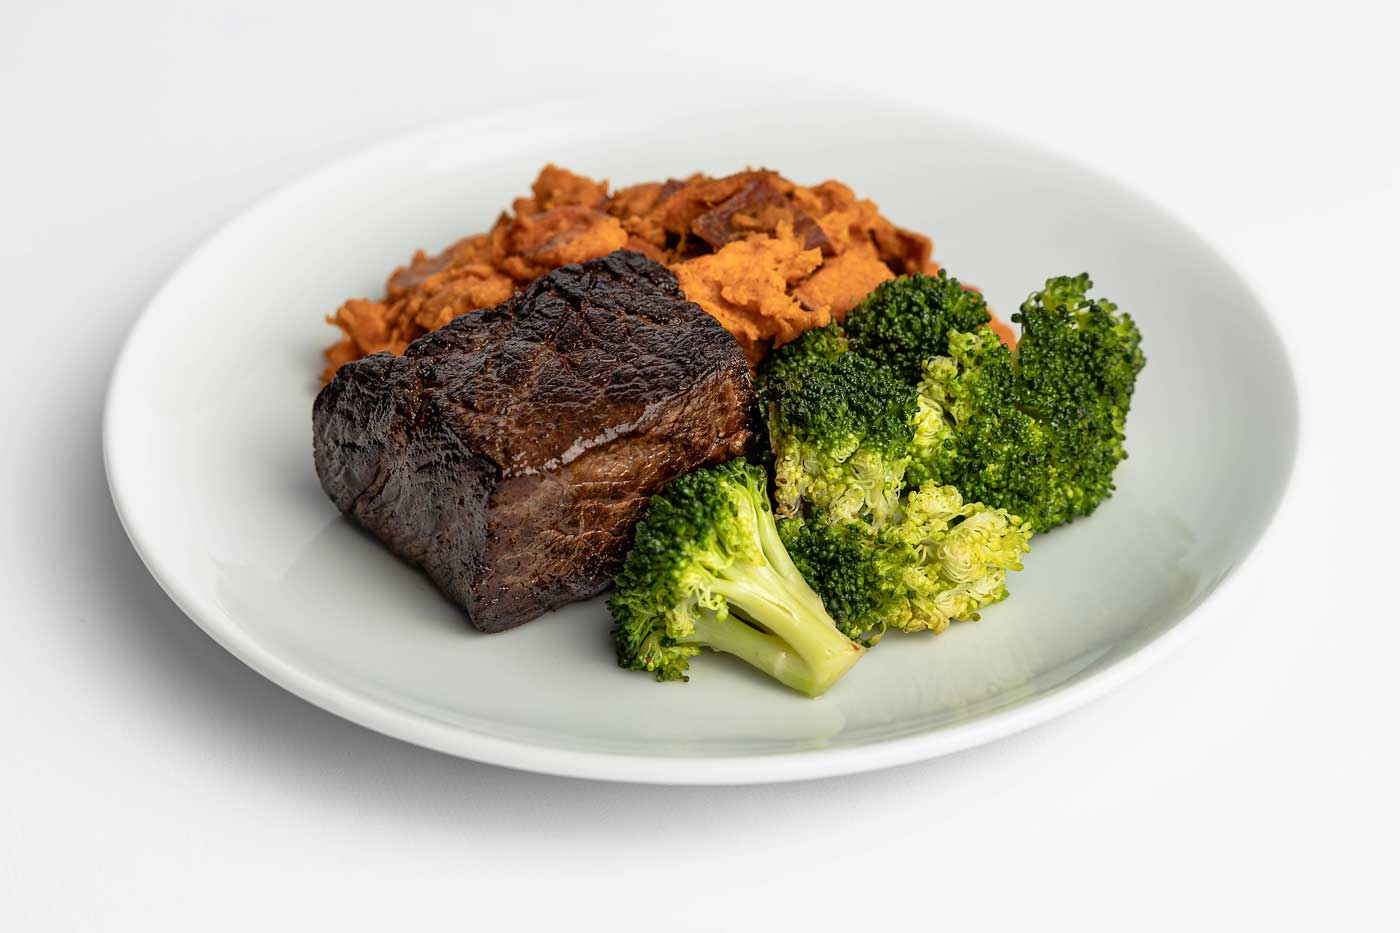 Paleo Meal Delivery Grass-Fed Steak with Mashed Sweet Potatoes and Broccoli